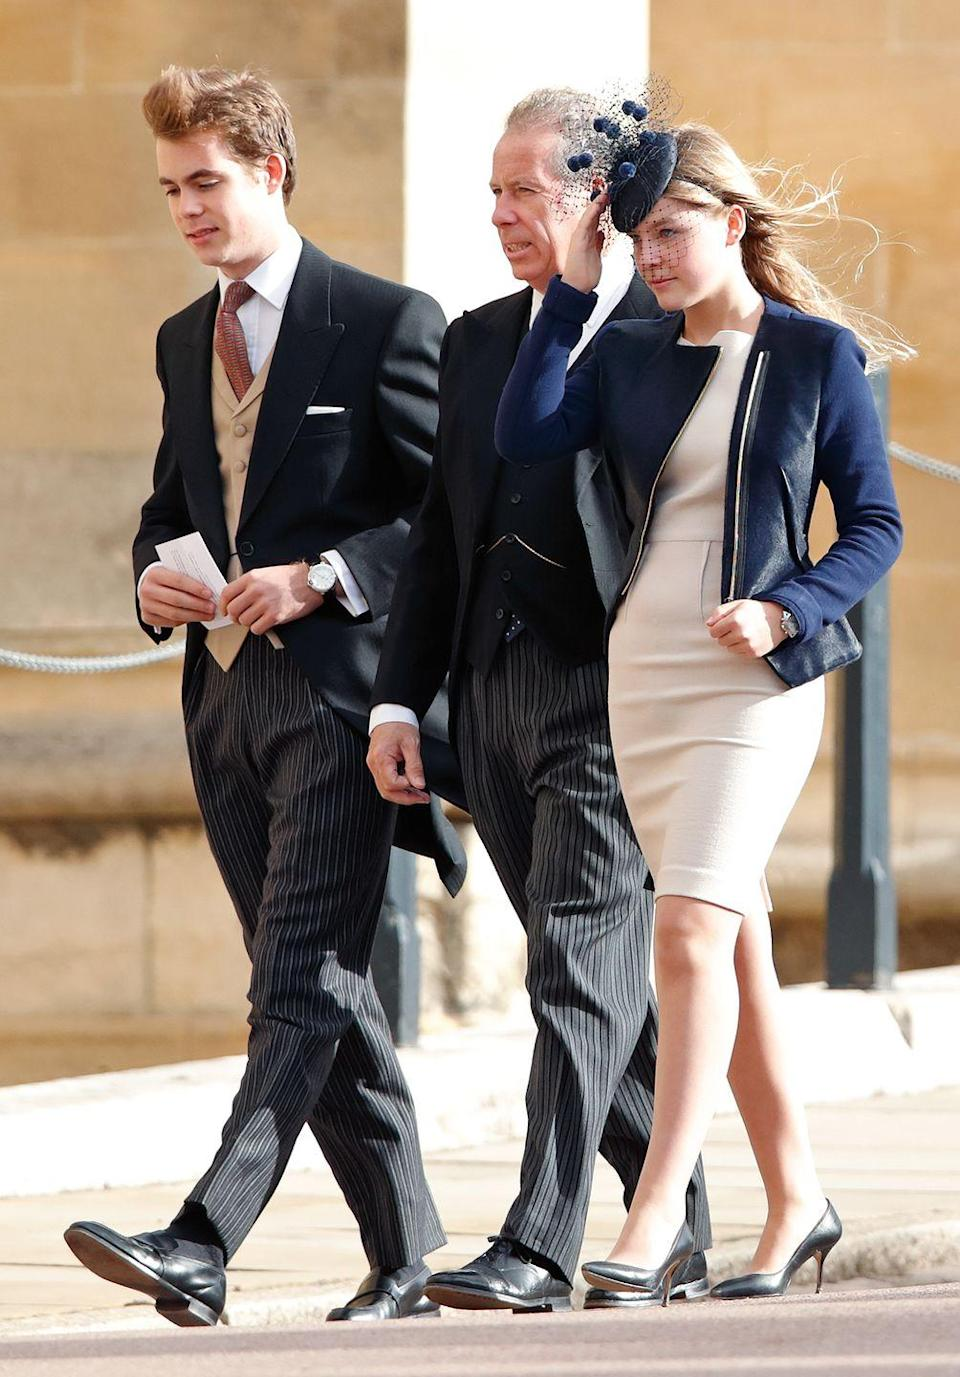 <p><strong>Branch of the Family Tree: </strong>Children of David Armstrong-Jones, Viscount Linley; grand-nephew and -niece of Queen Elizabeth II</p><p><em>(pictured here with their dad, David Armstrong-Jones)</em></p>